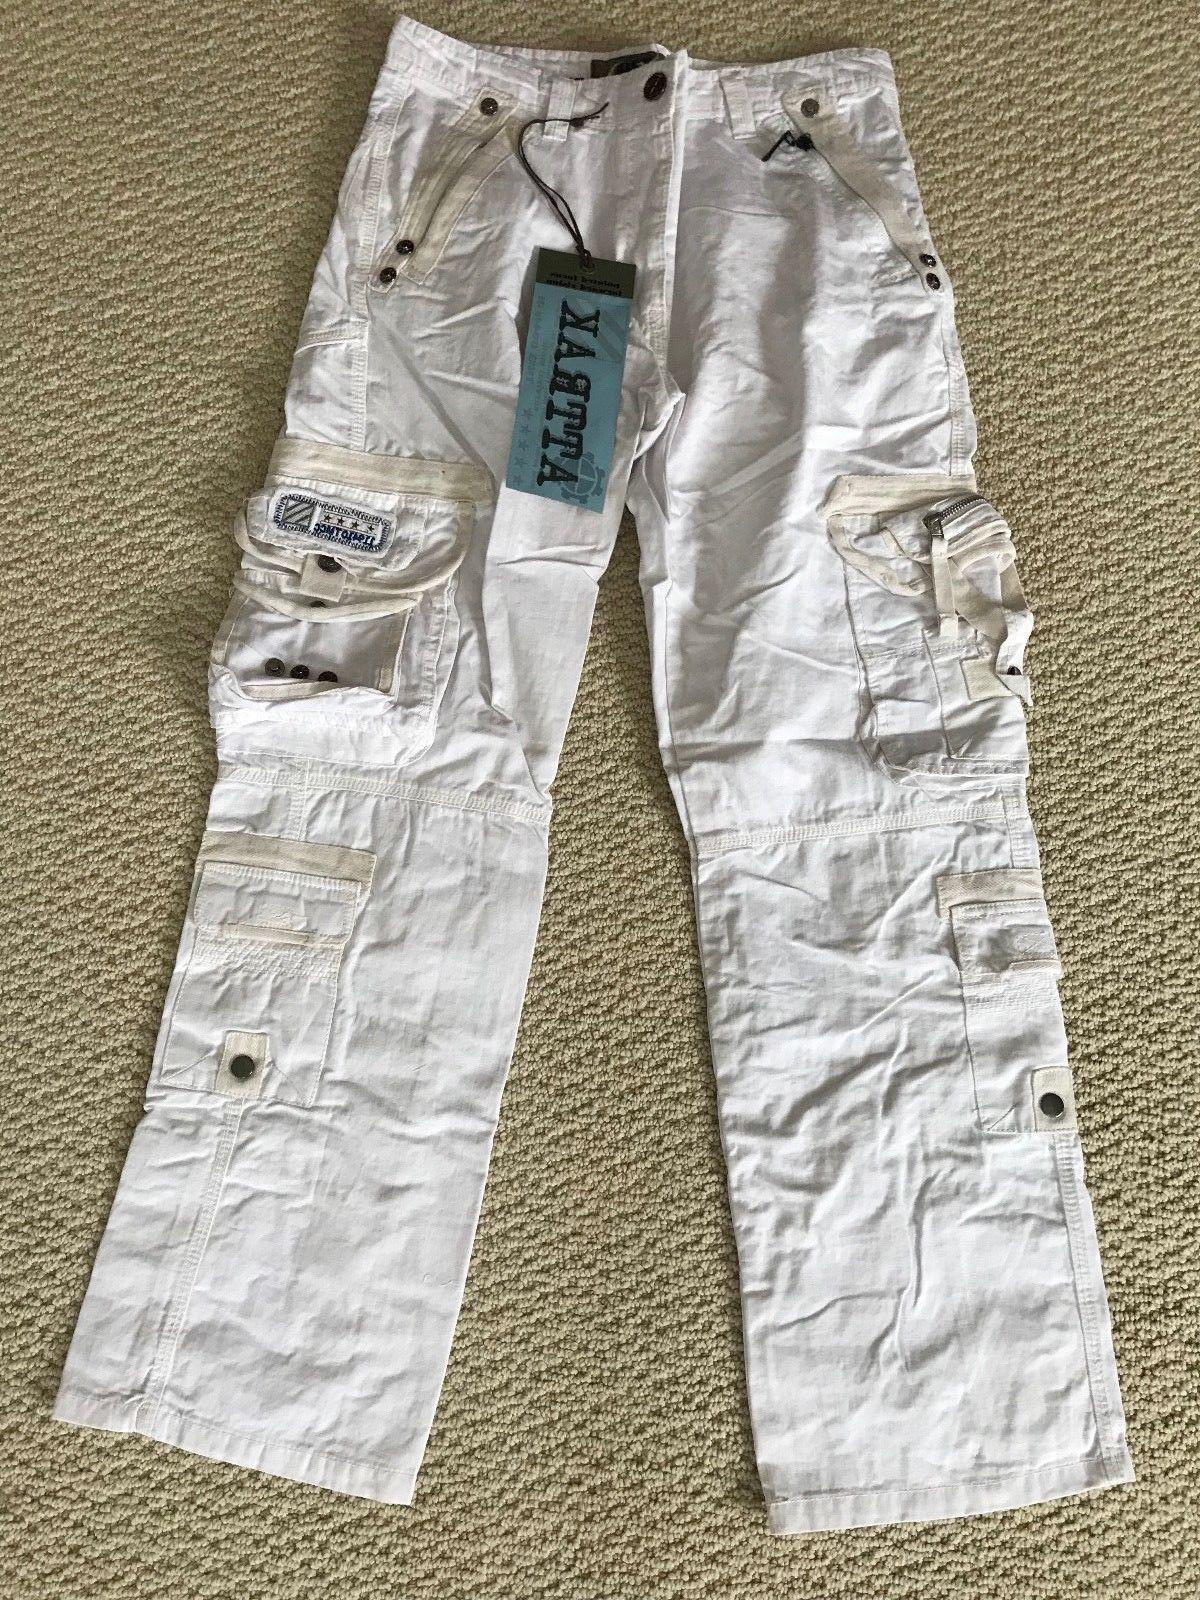 NWT Men's Attrak 500 White Embroidered Patch Zip Cargo Pocke